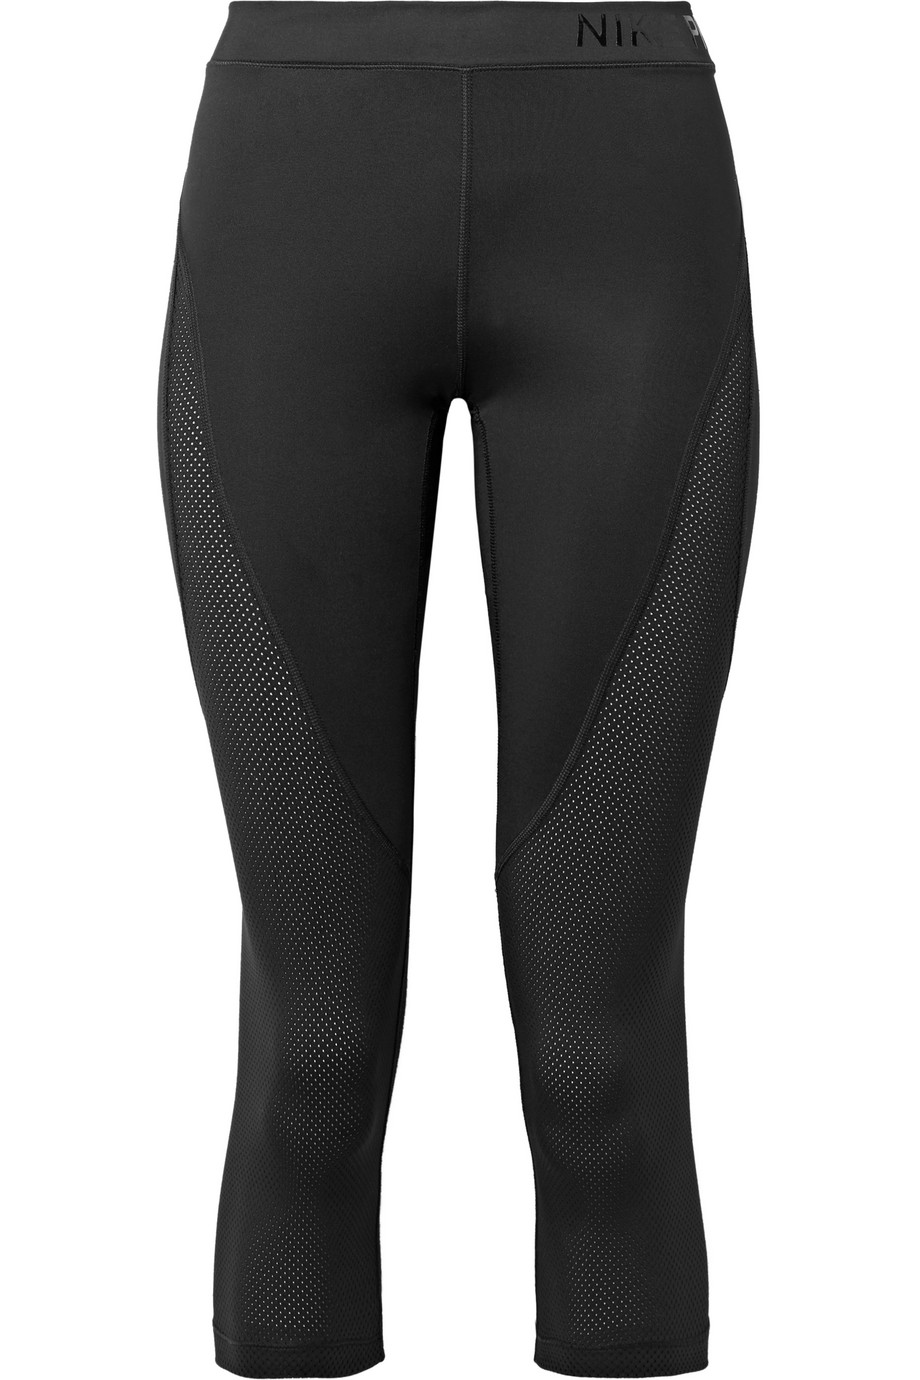 cheap running nike leggings